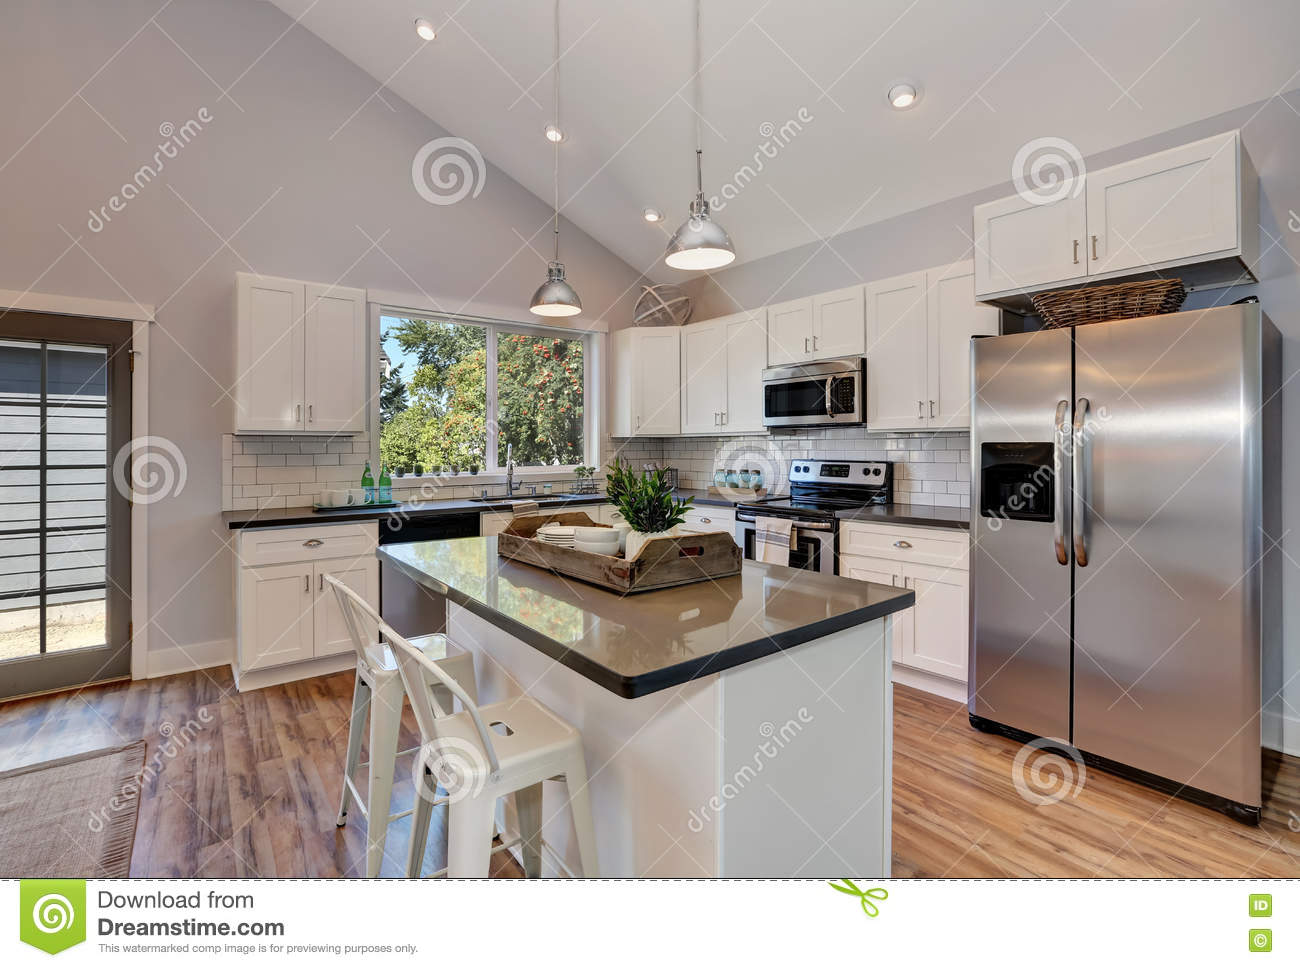 interior of kitchen room with high vaulted ceiling stock image image 76323455. Black Bedroom Furniture Sets. Home Design Ideas